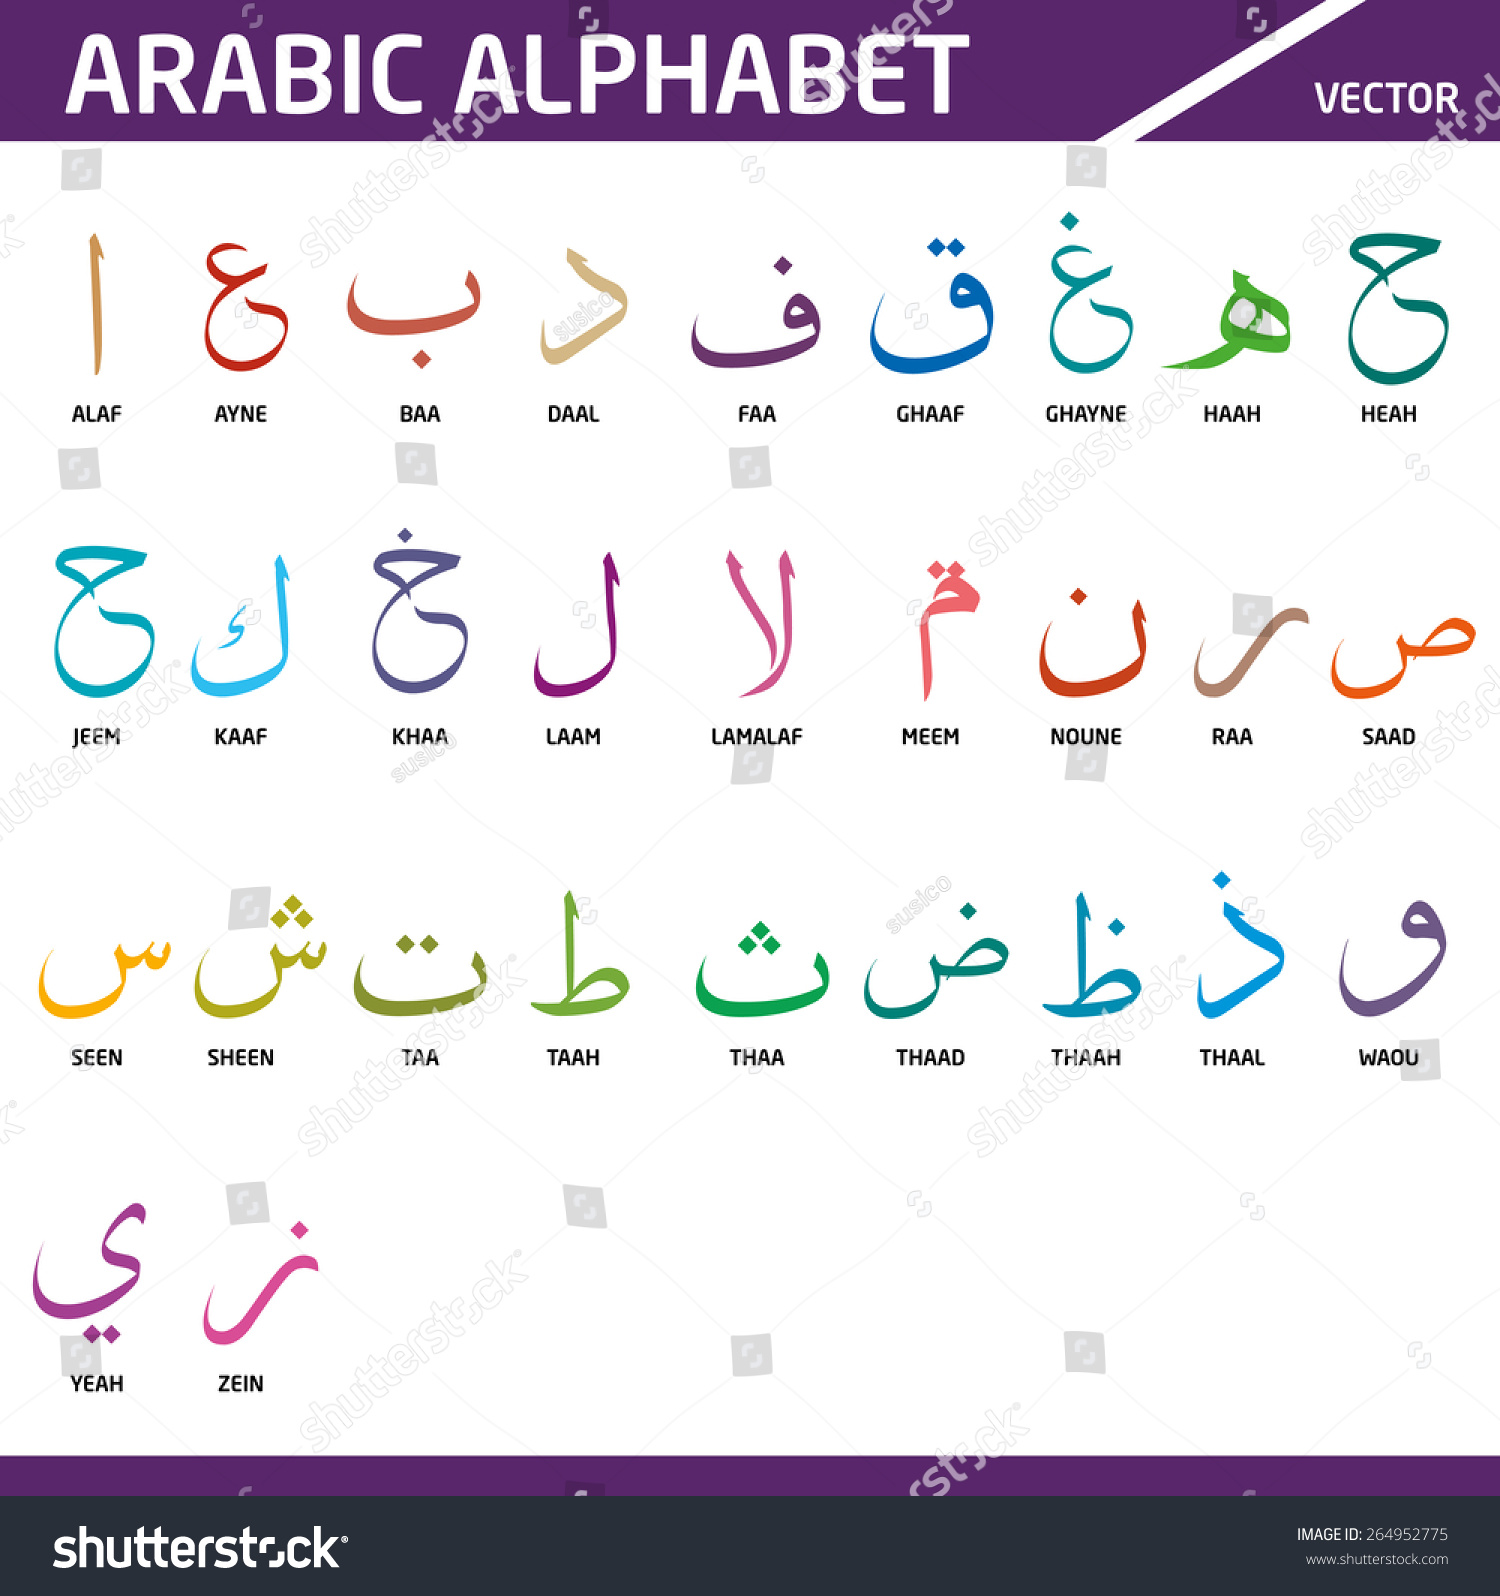 Worksheet Names In Shapes names shapes letters colorful arabic alphabet stock vector the and of in alphabet